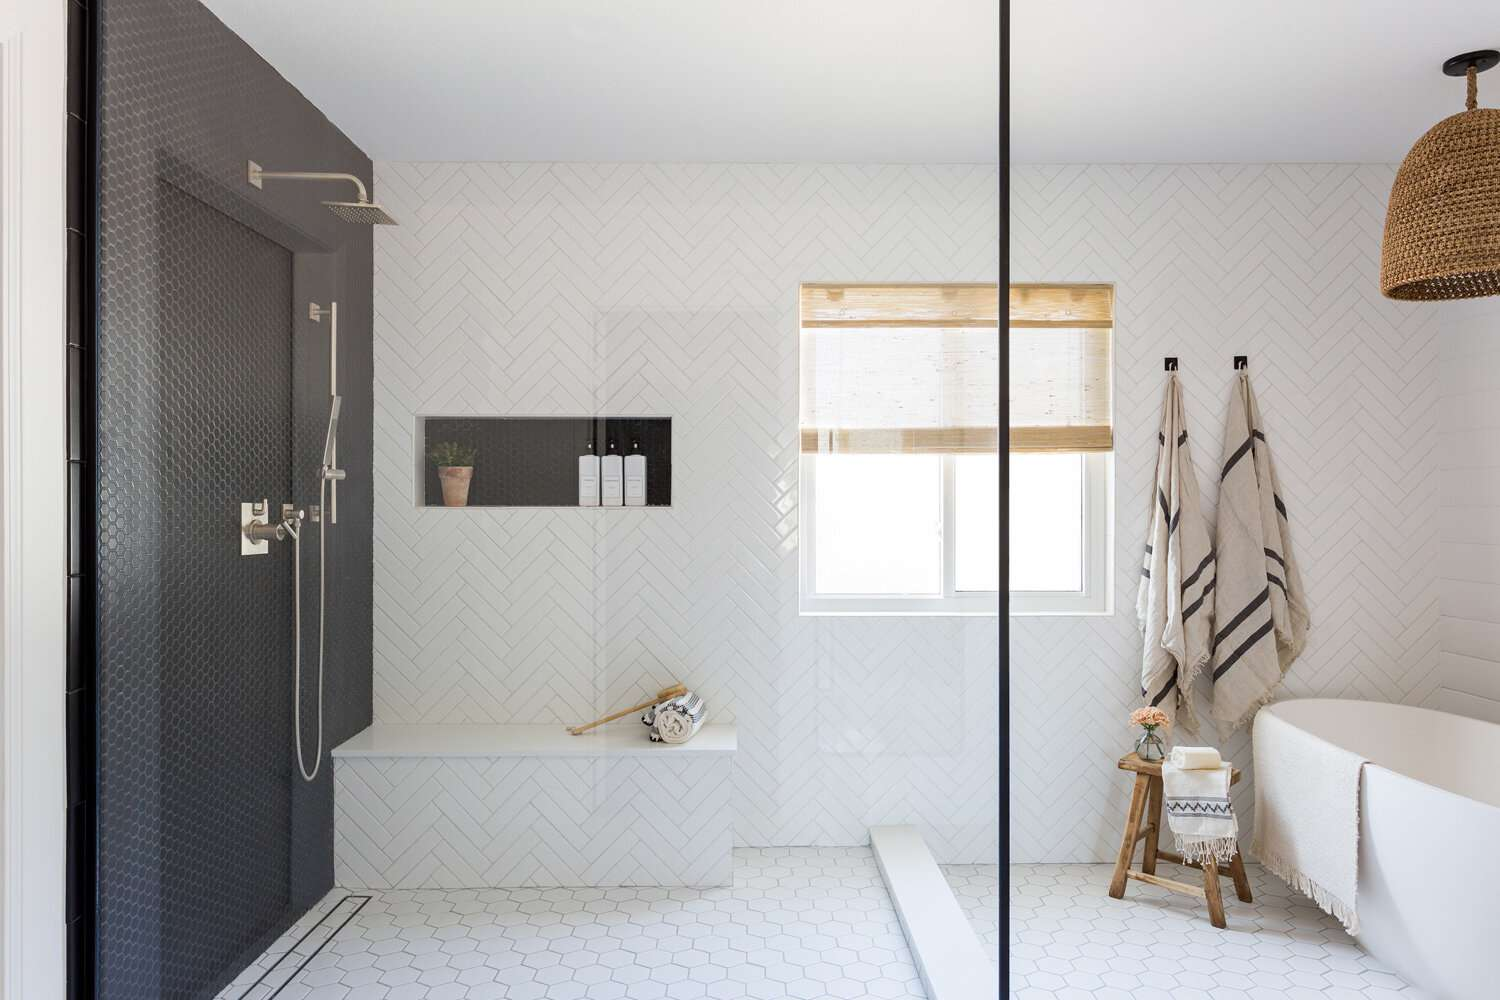 Shower with a built-in shelf